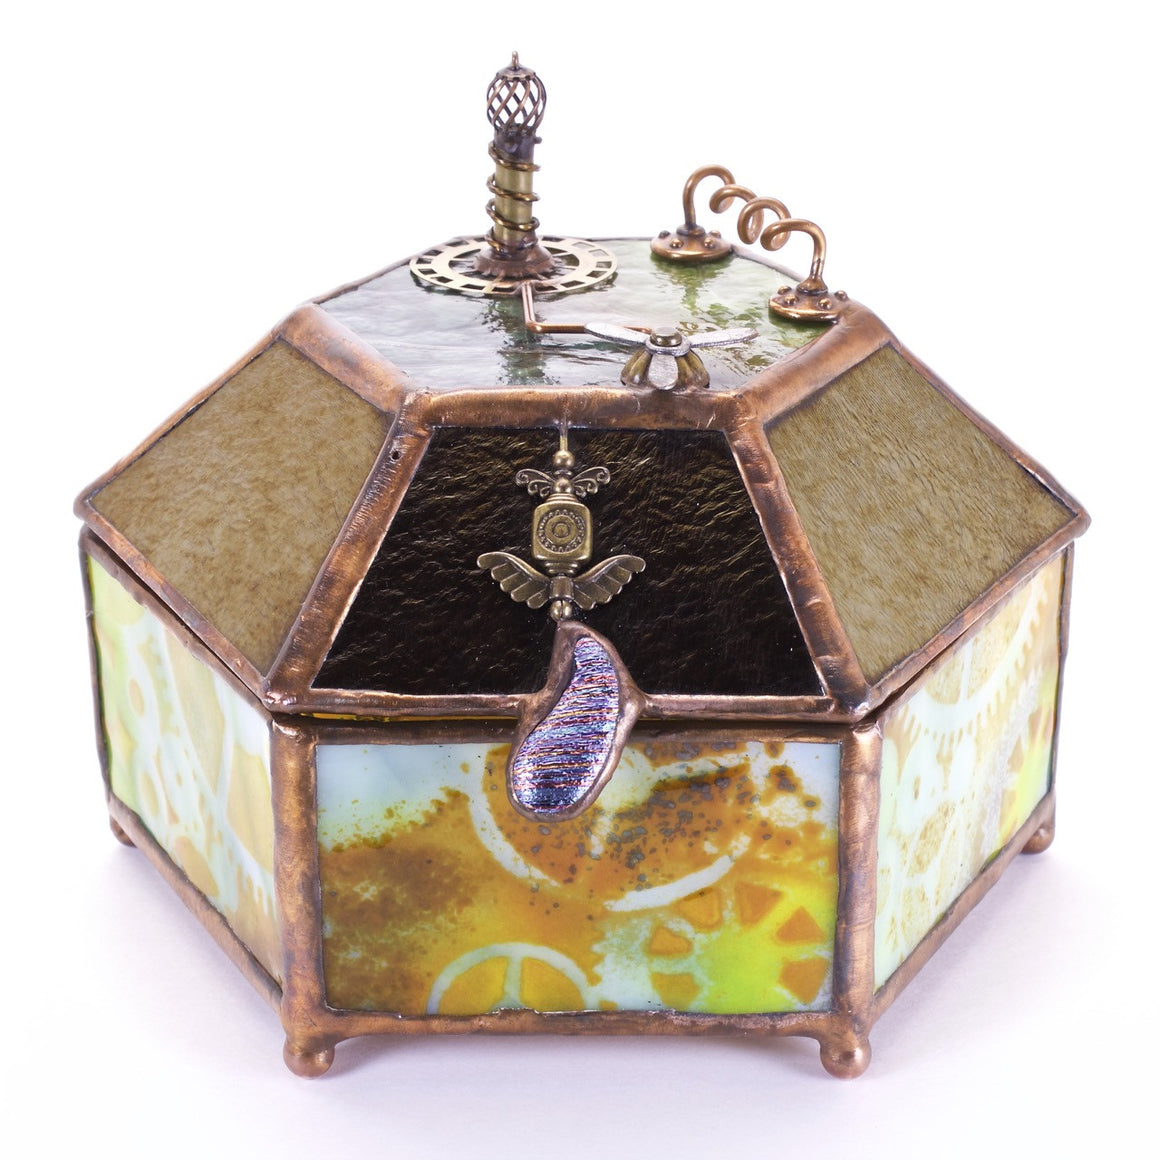 Steampunk fused glass box - Dawn Donati